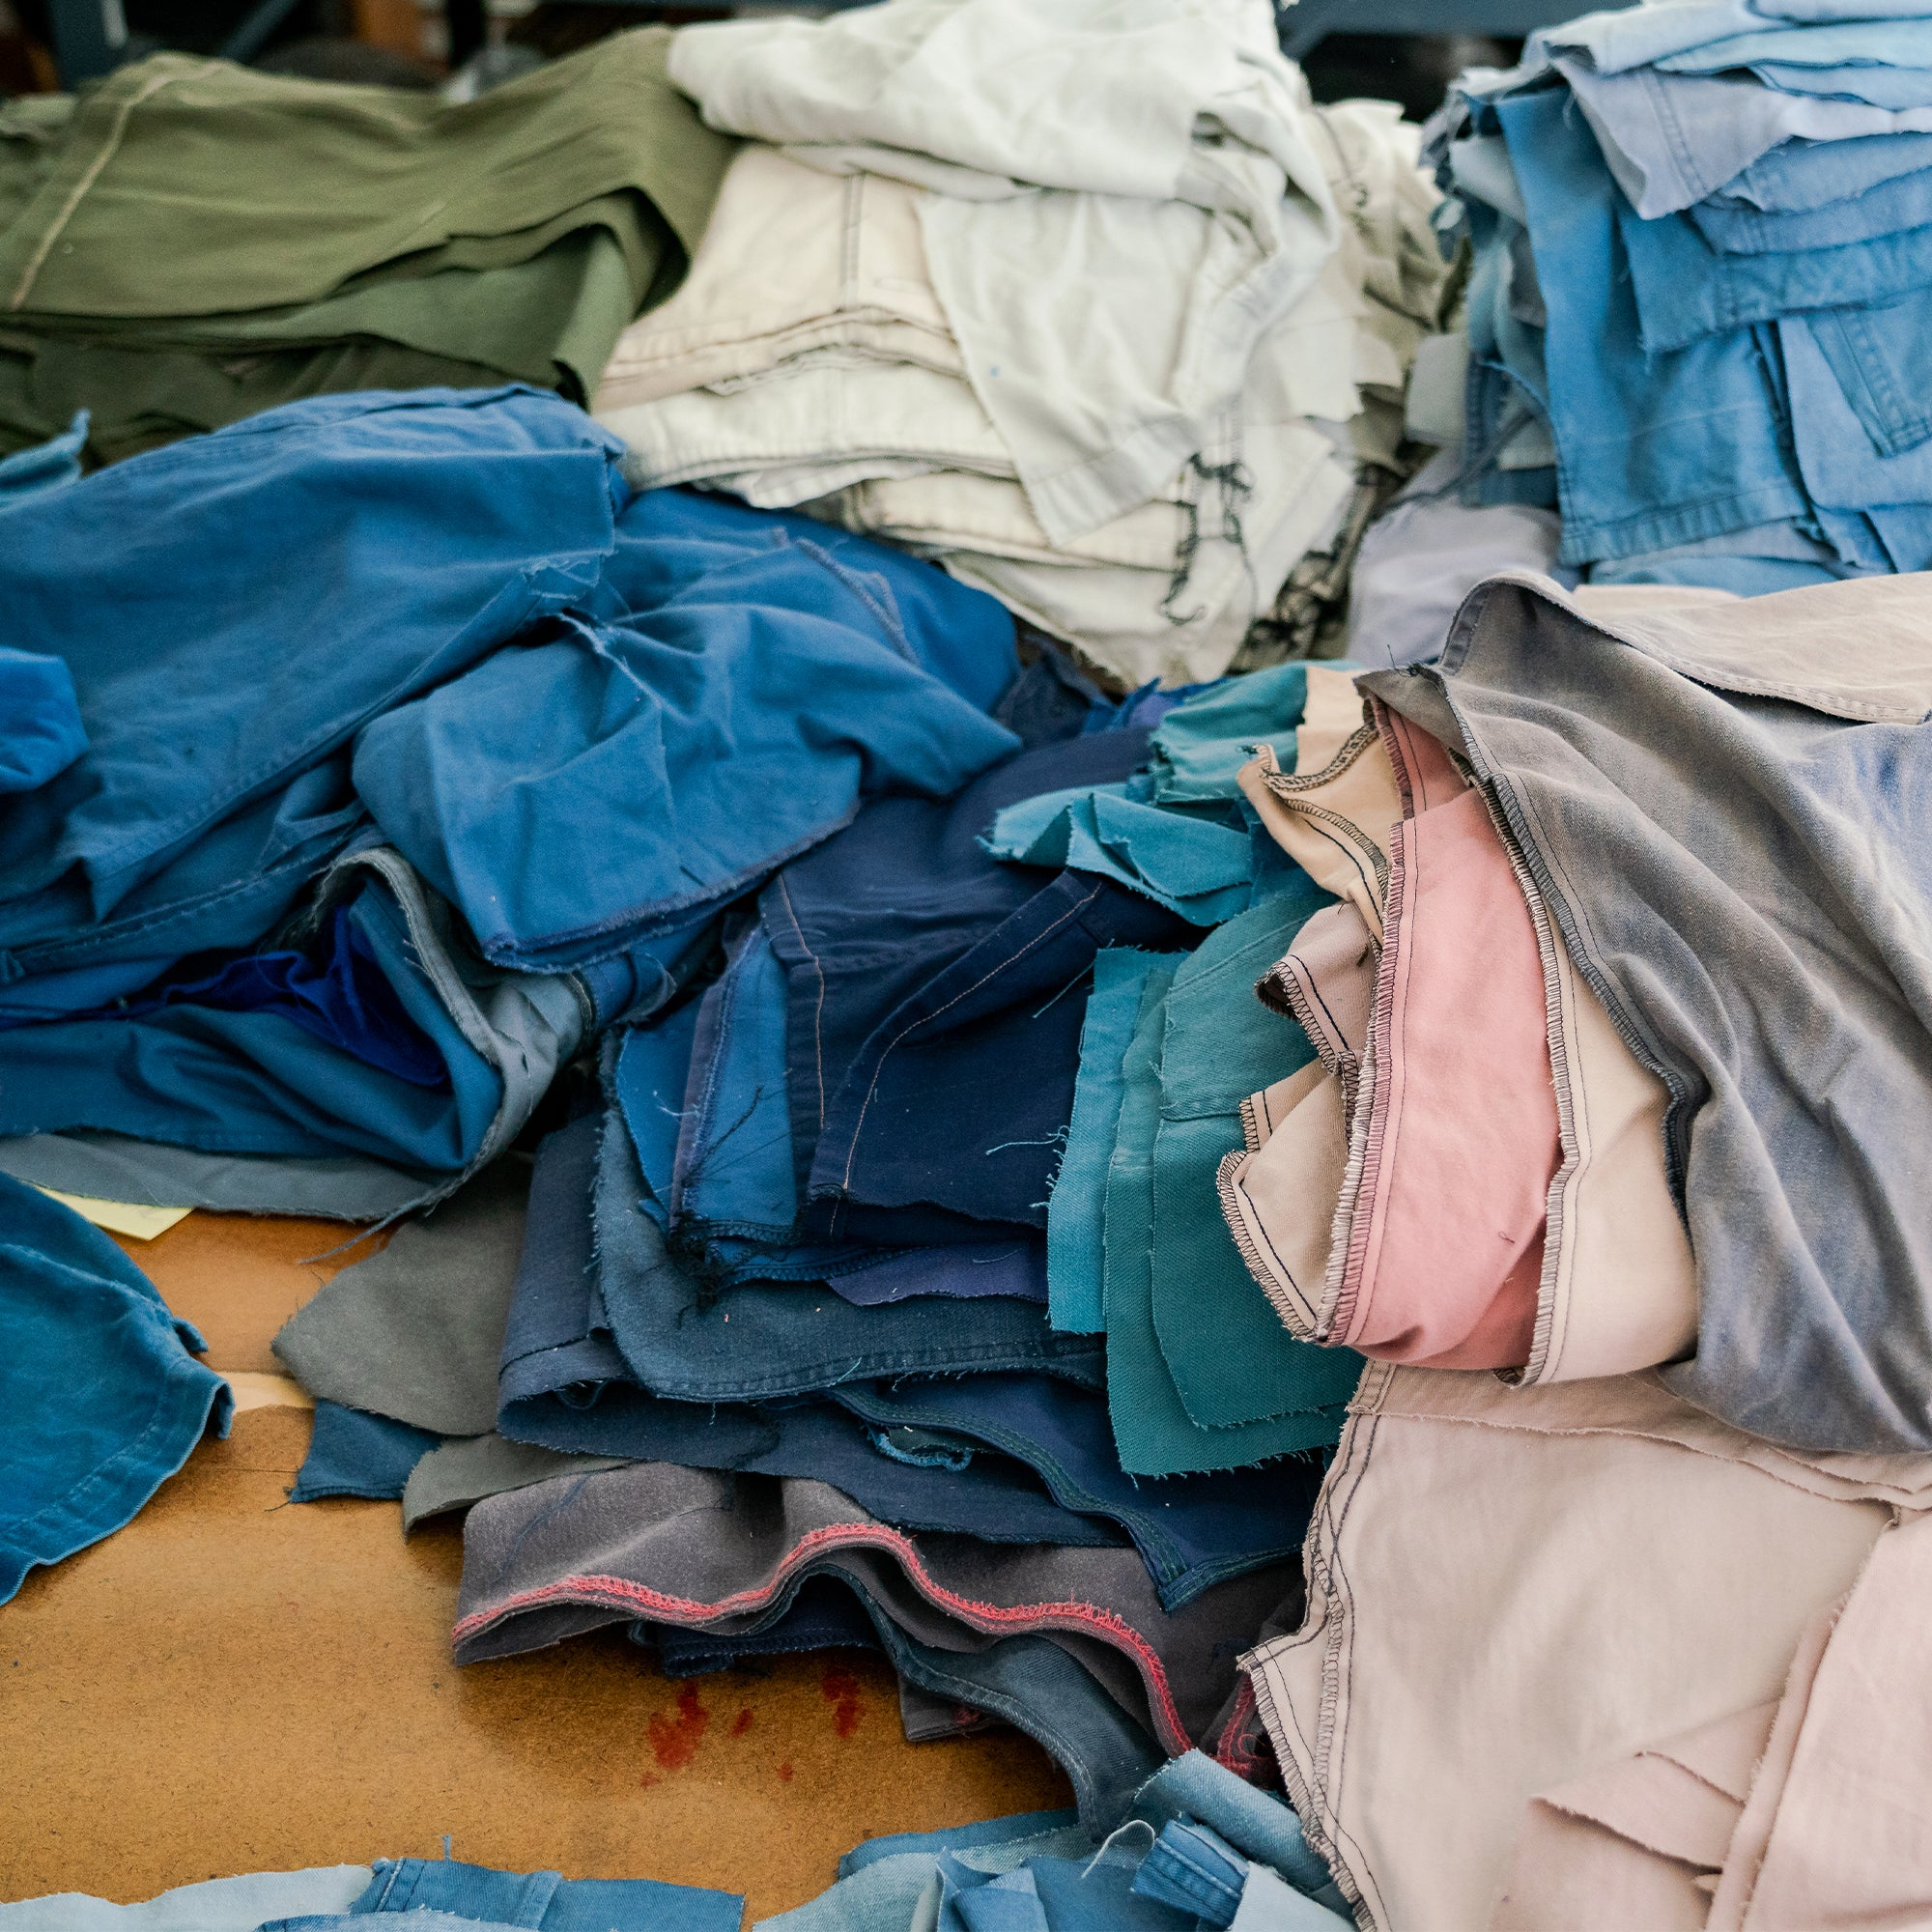 image of a pile of stitched together fabric pieces